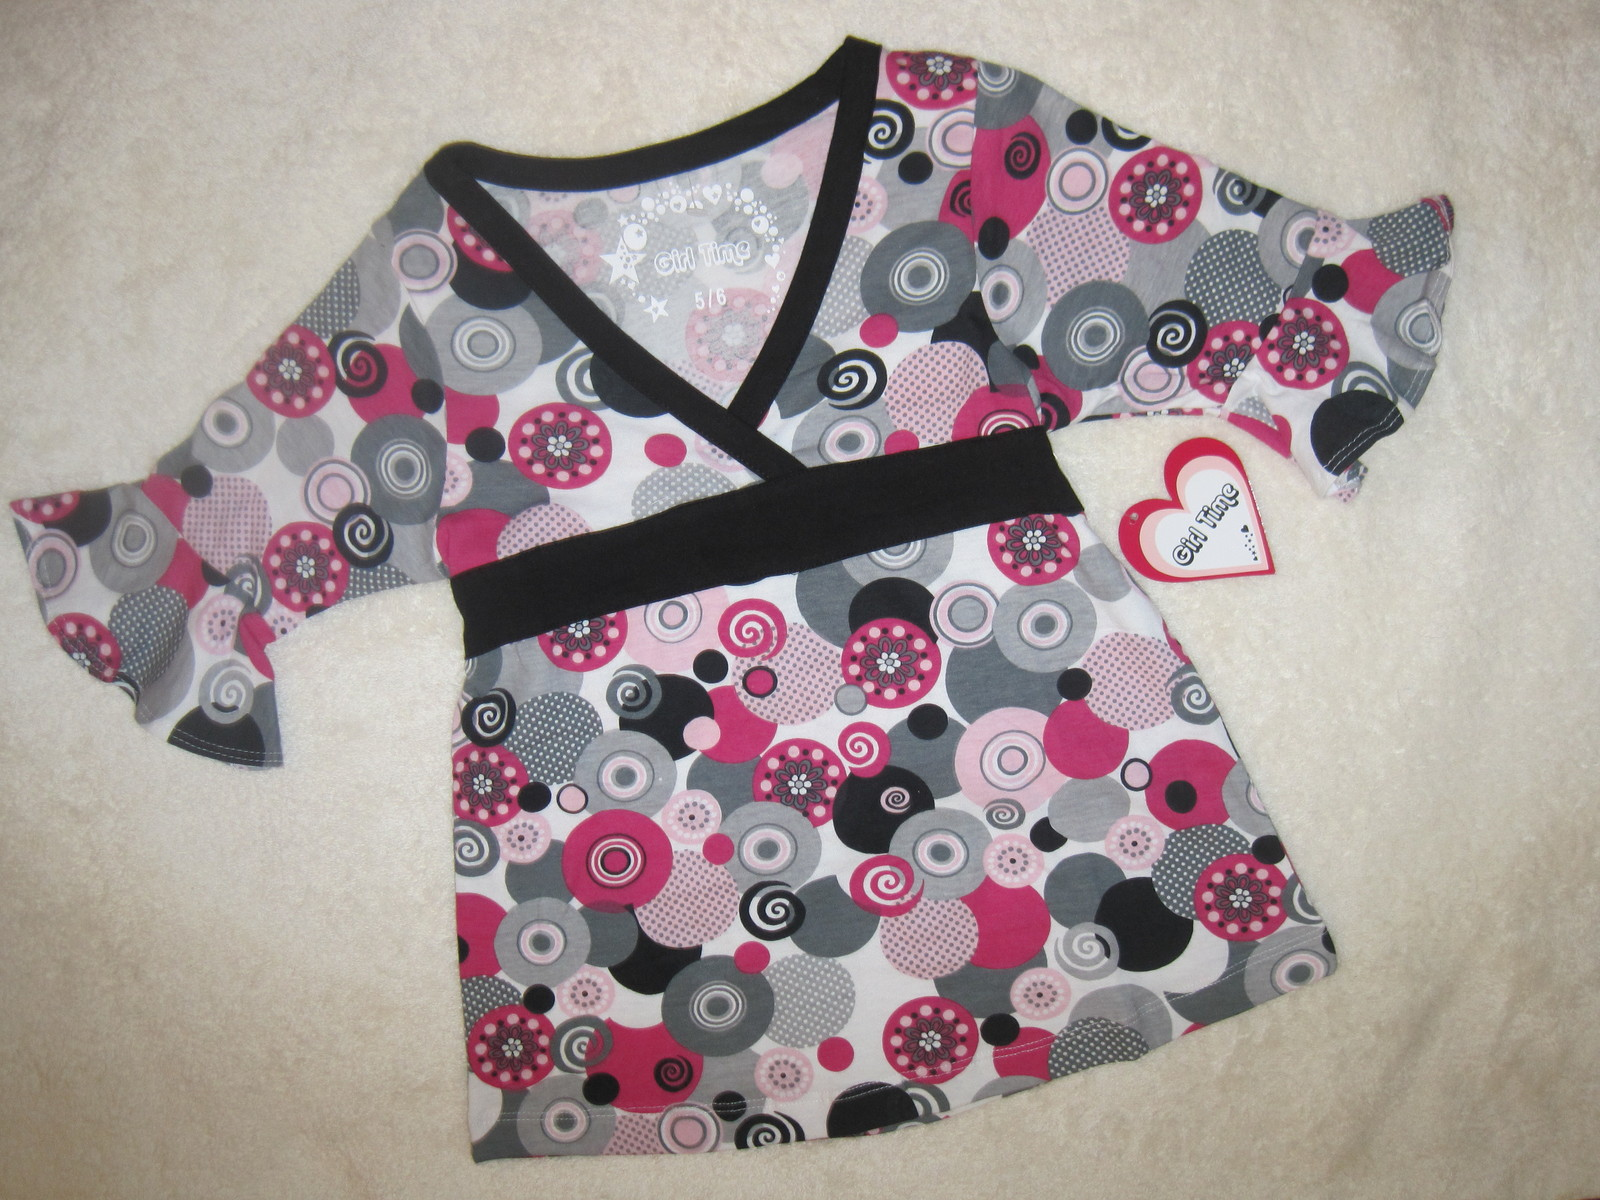 GIRLS 5-6 - Girl Time - Pink / Gray Pullover BLOUSE